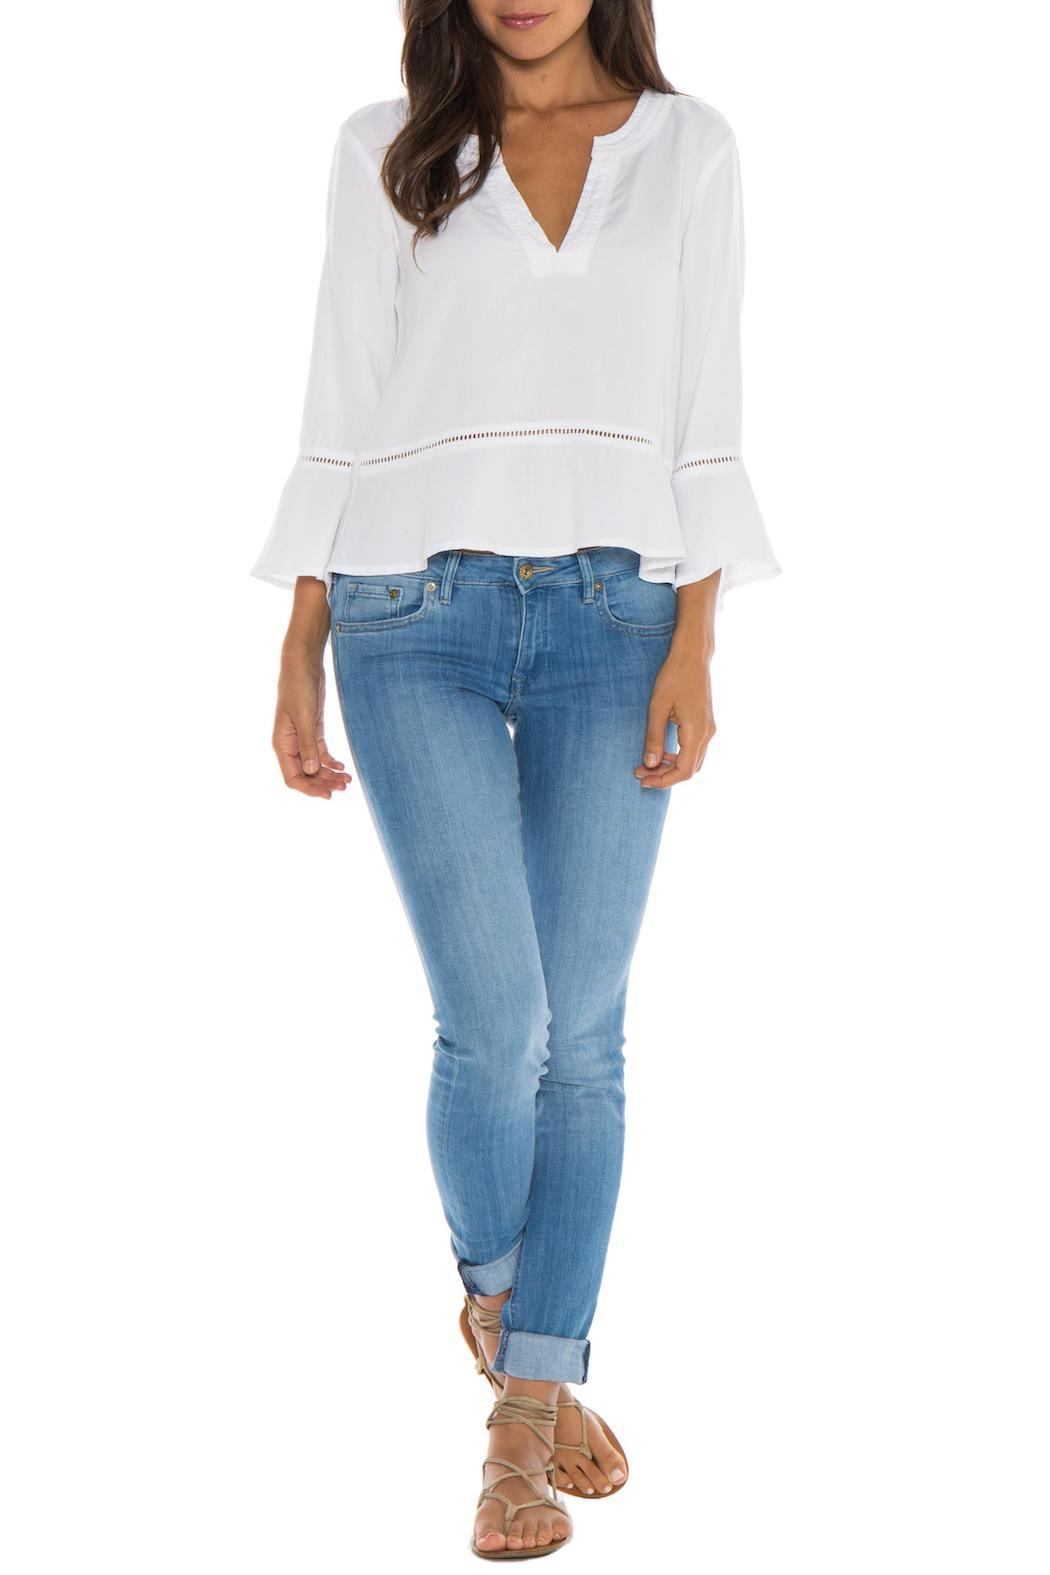 Bella Dahl Peplum Pullover - Front Cropped Image